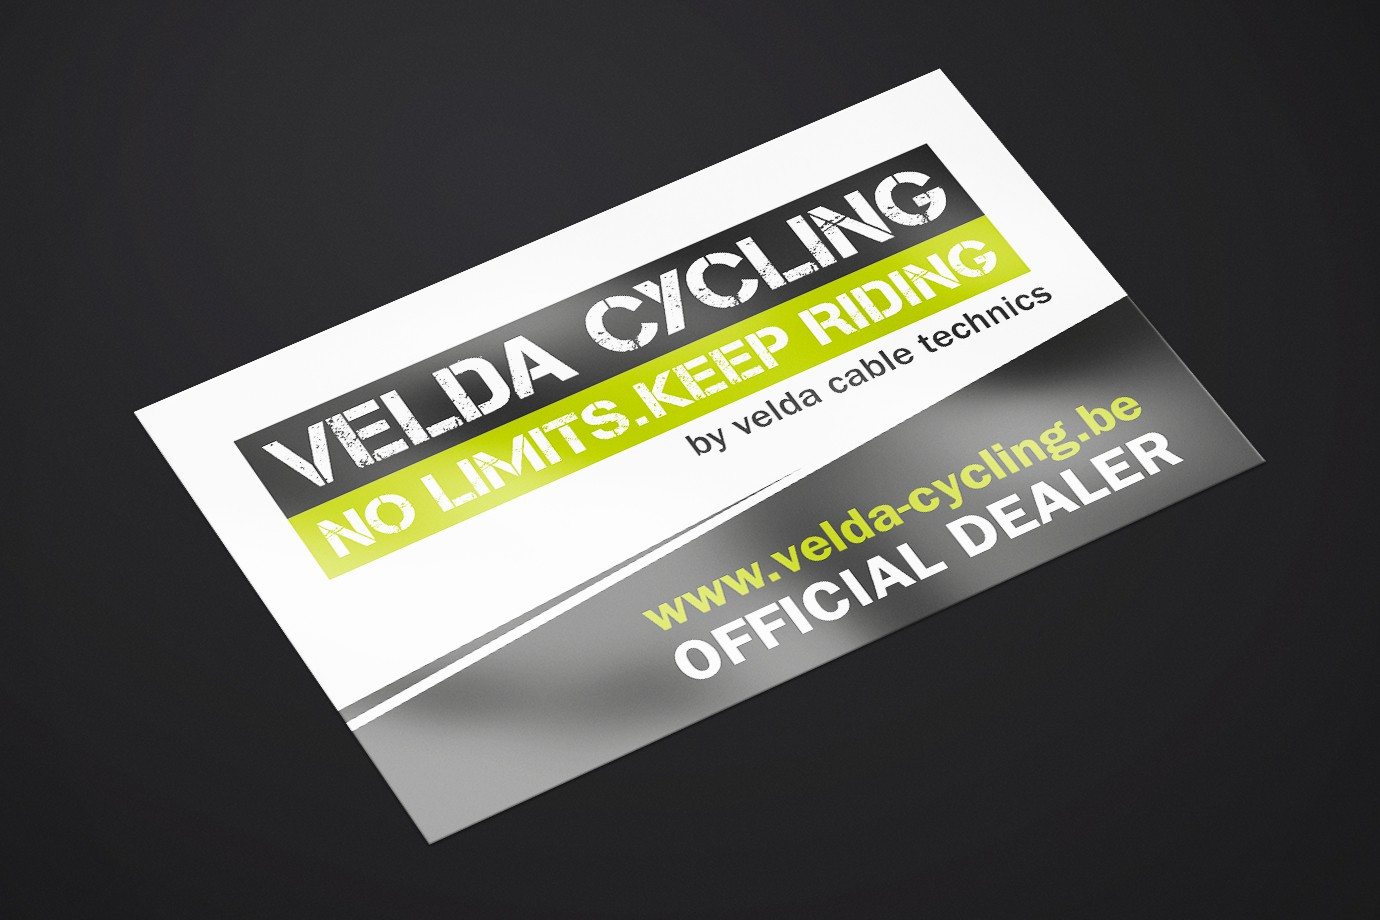 Velda sticker